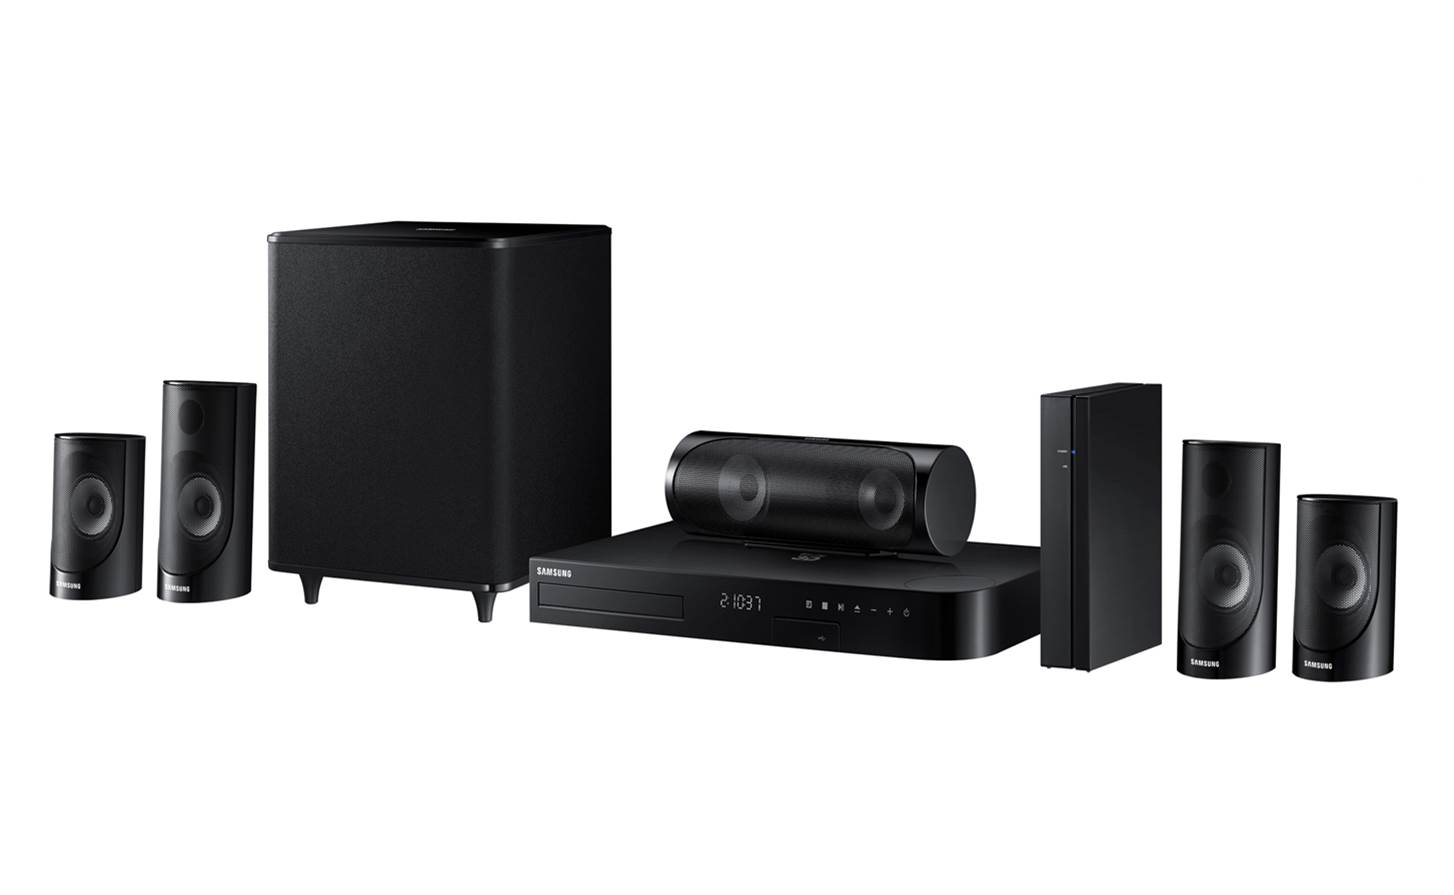 Samsung HT-J5500W 5.1 Home Theater in a Box